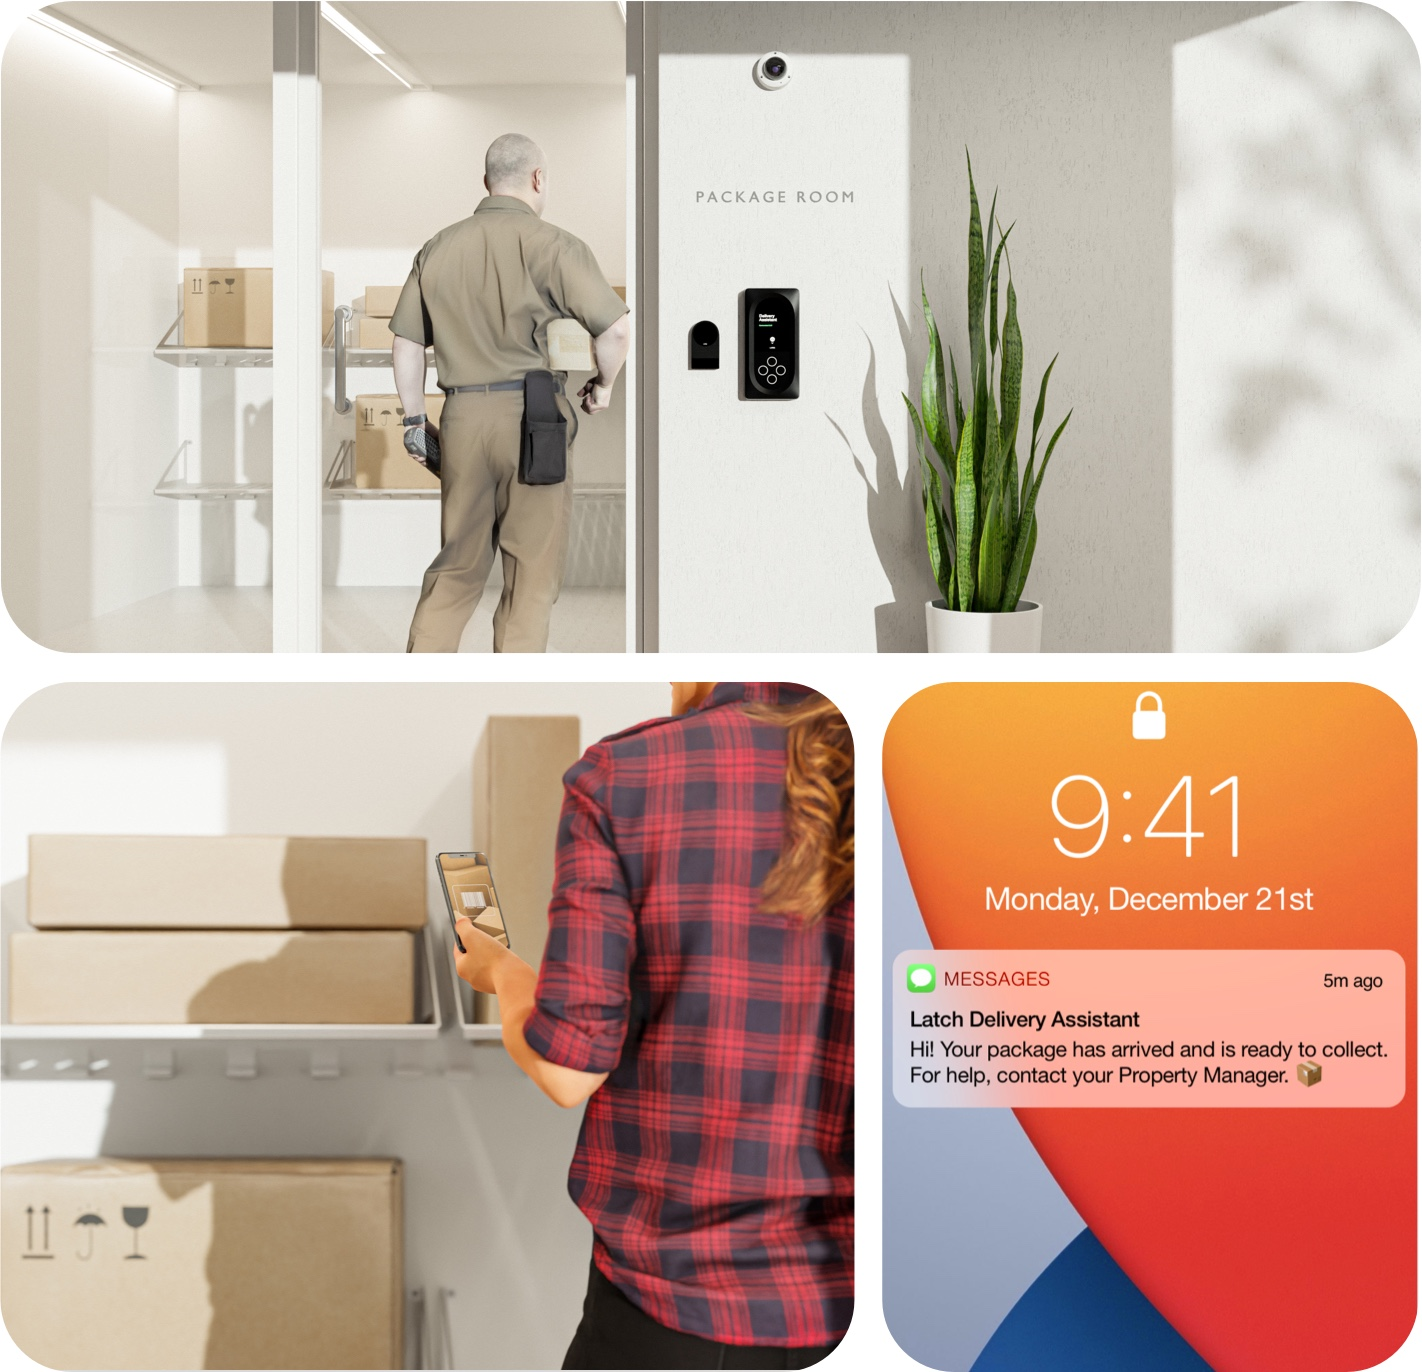 Collage showing a package room and a text message from the Latch Delivery Assistant informing people of the arrival of their packages